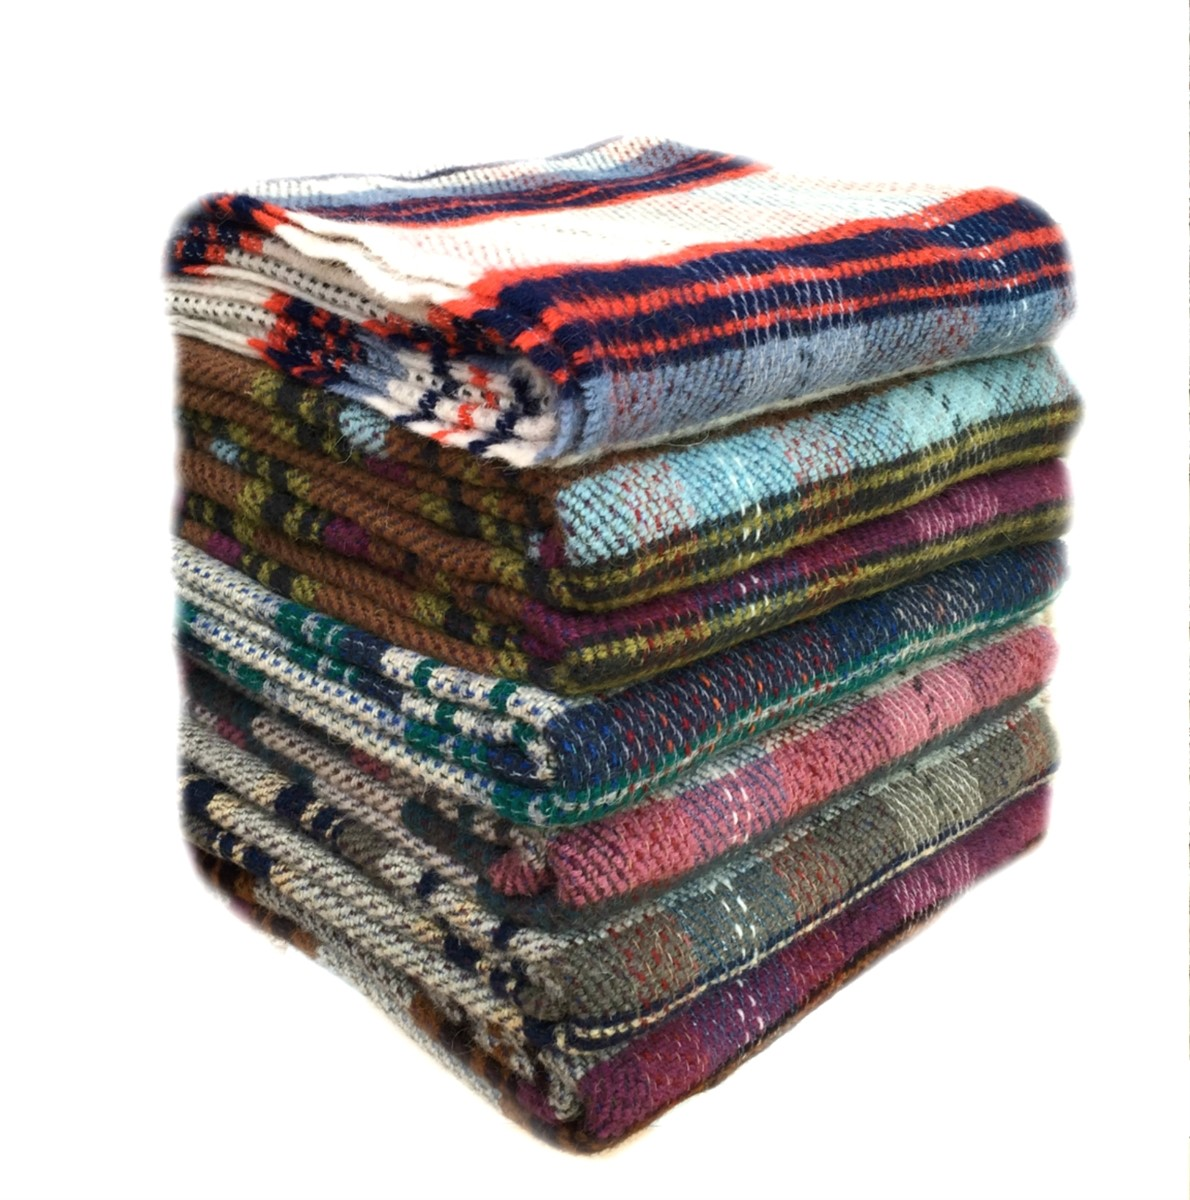 Wool Blanket Online British Made Gifts Recycled Random